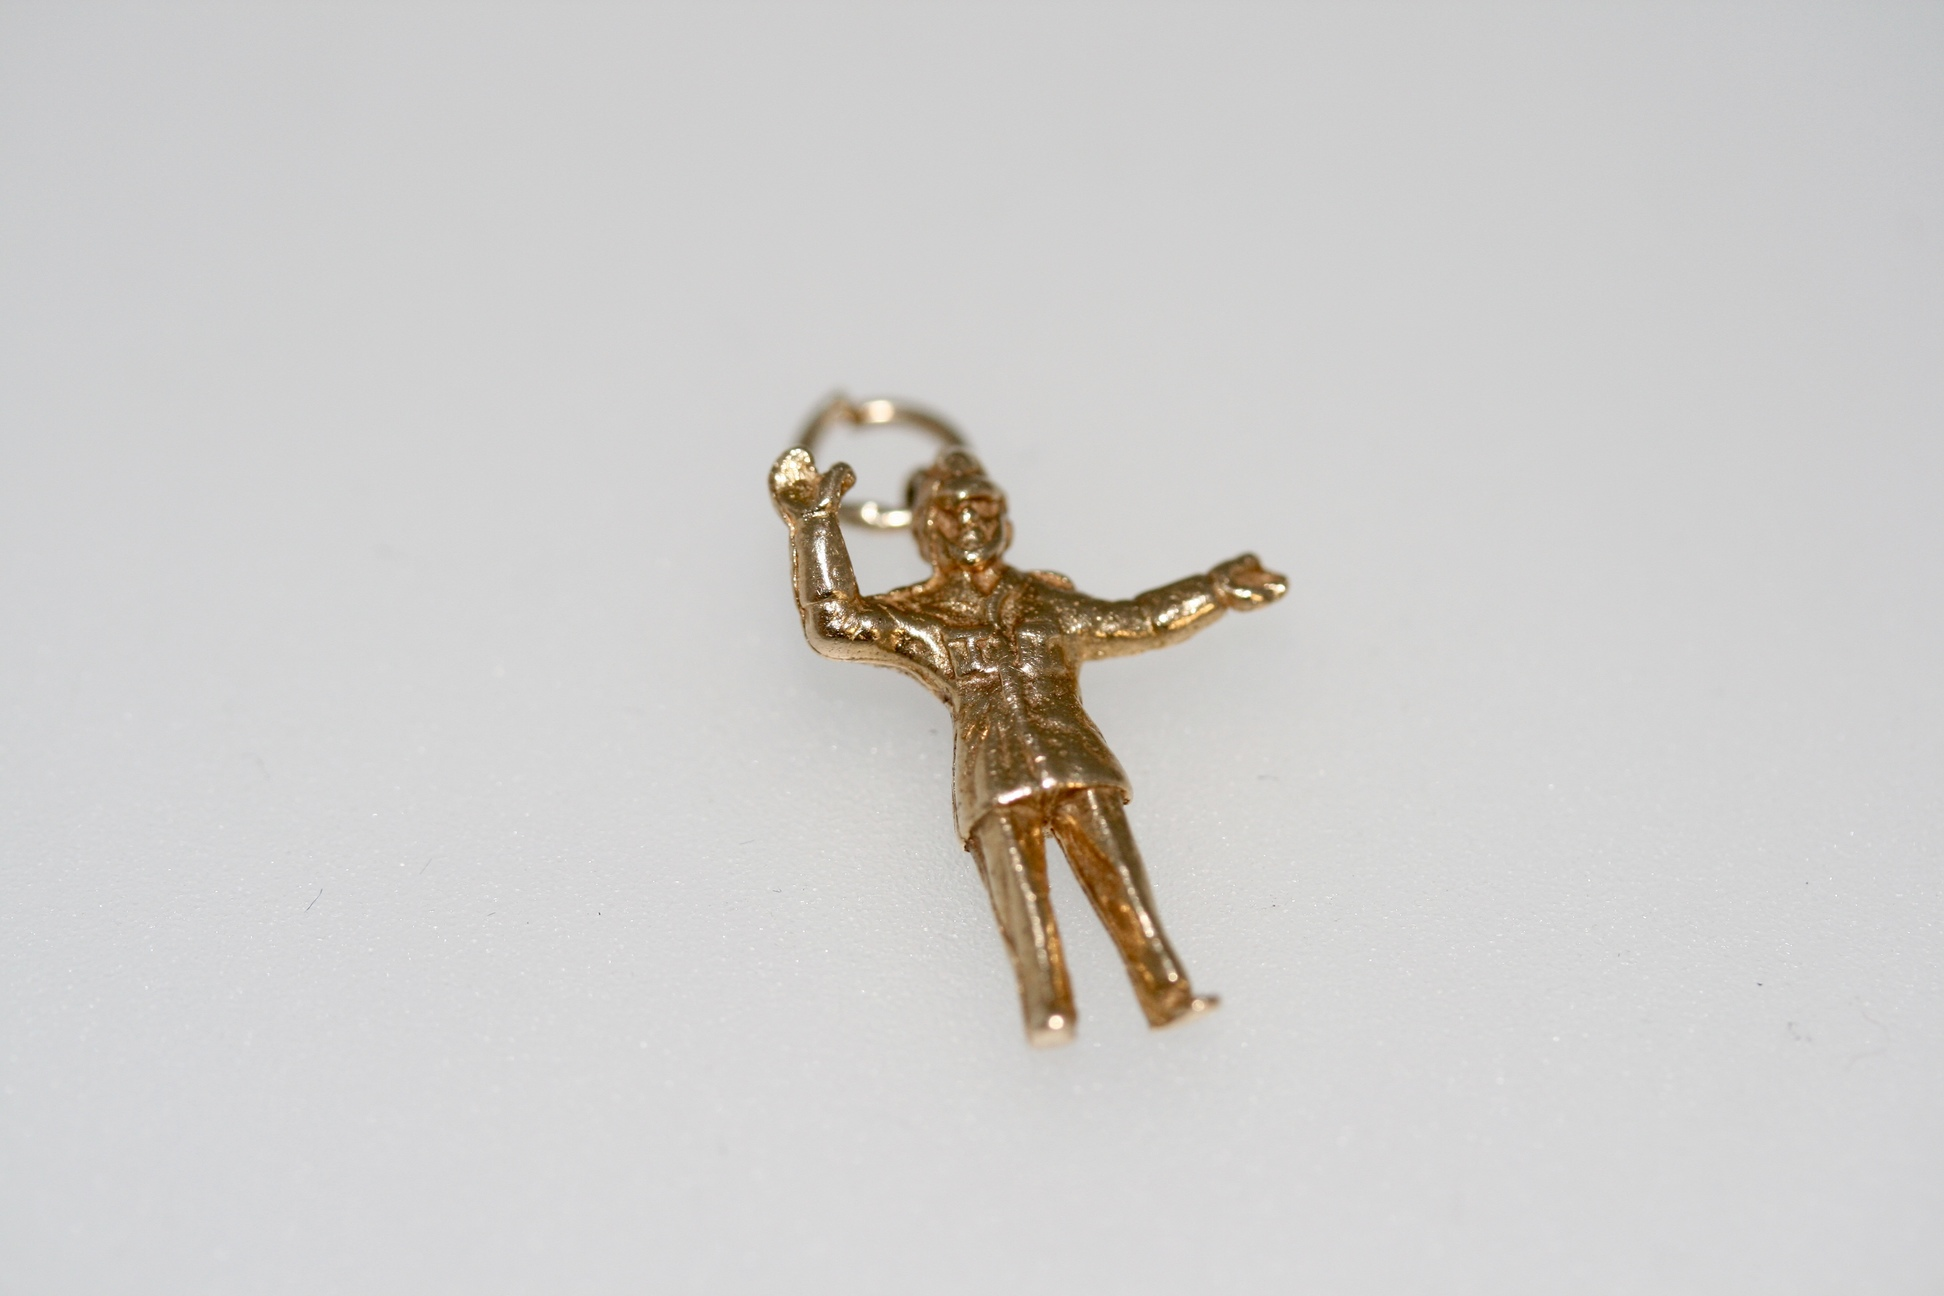 9ct Gold Police Constable Charm